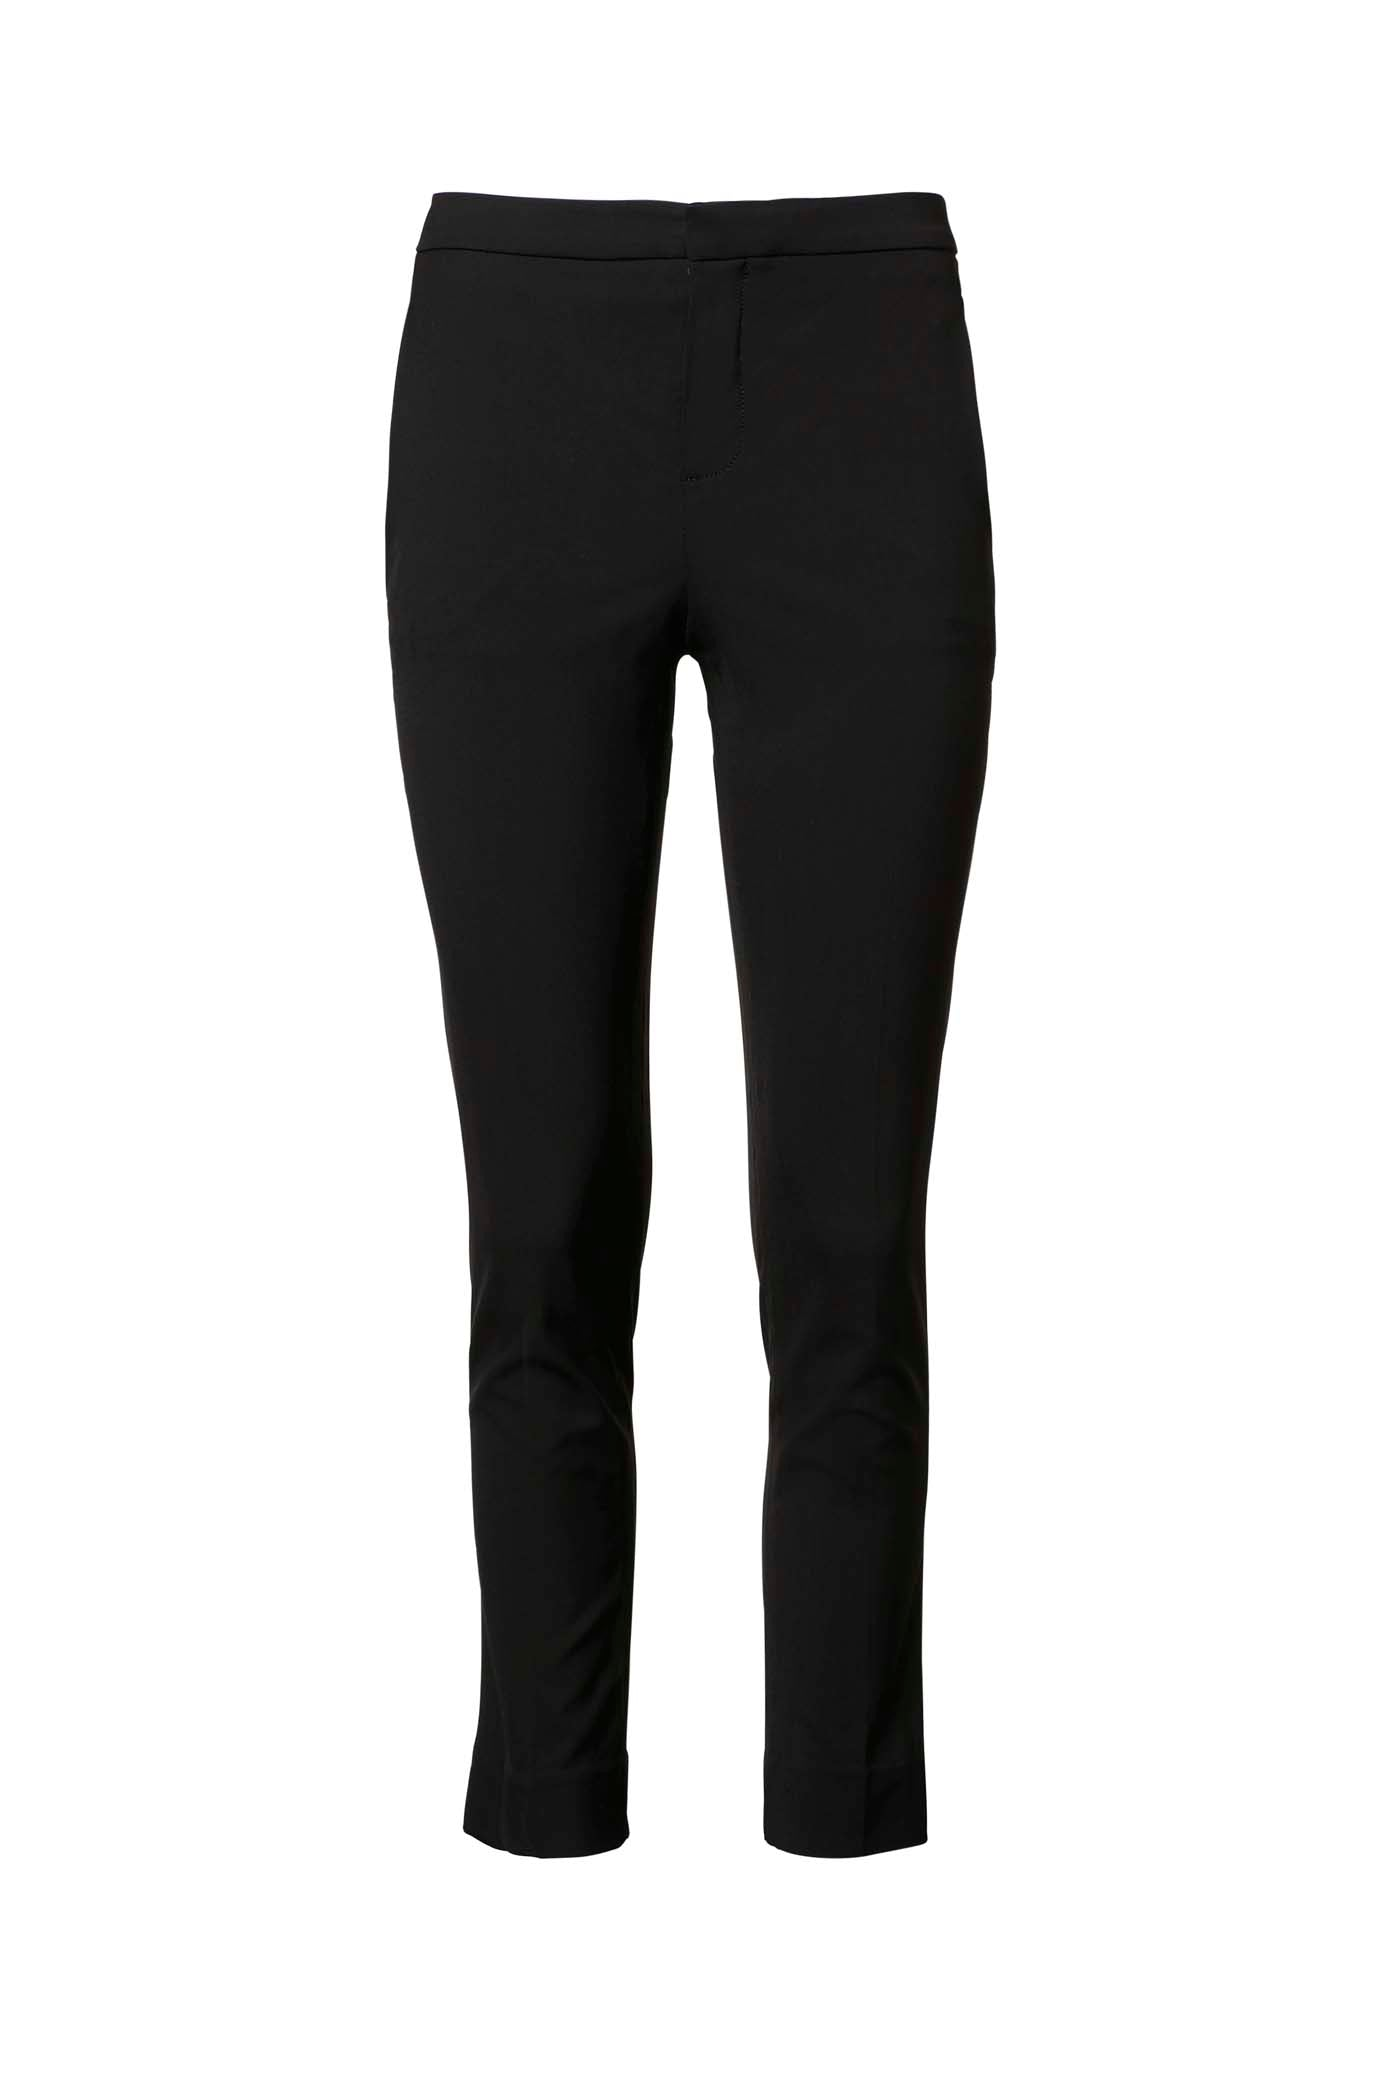 3e1d0f91689 TAILORED SLIM CROPPED TROUSER NAVY